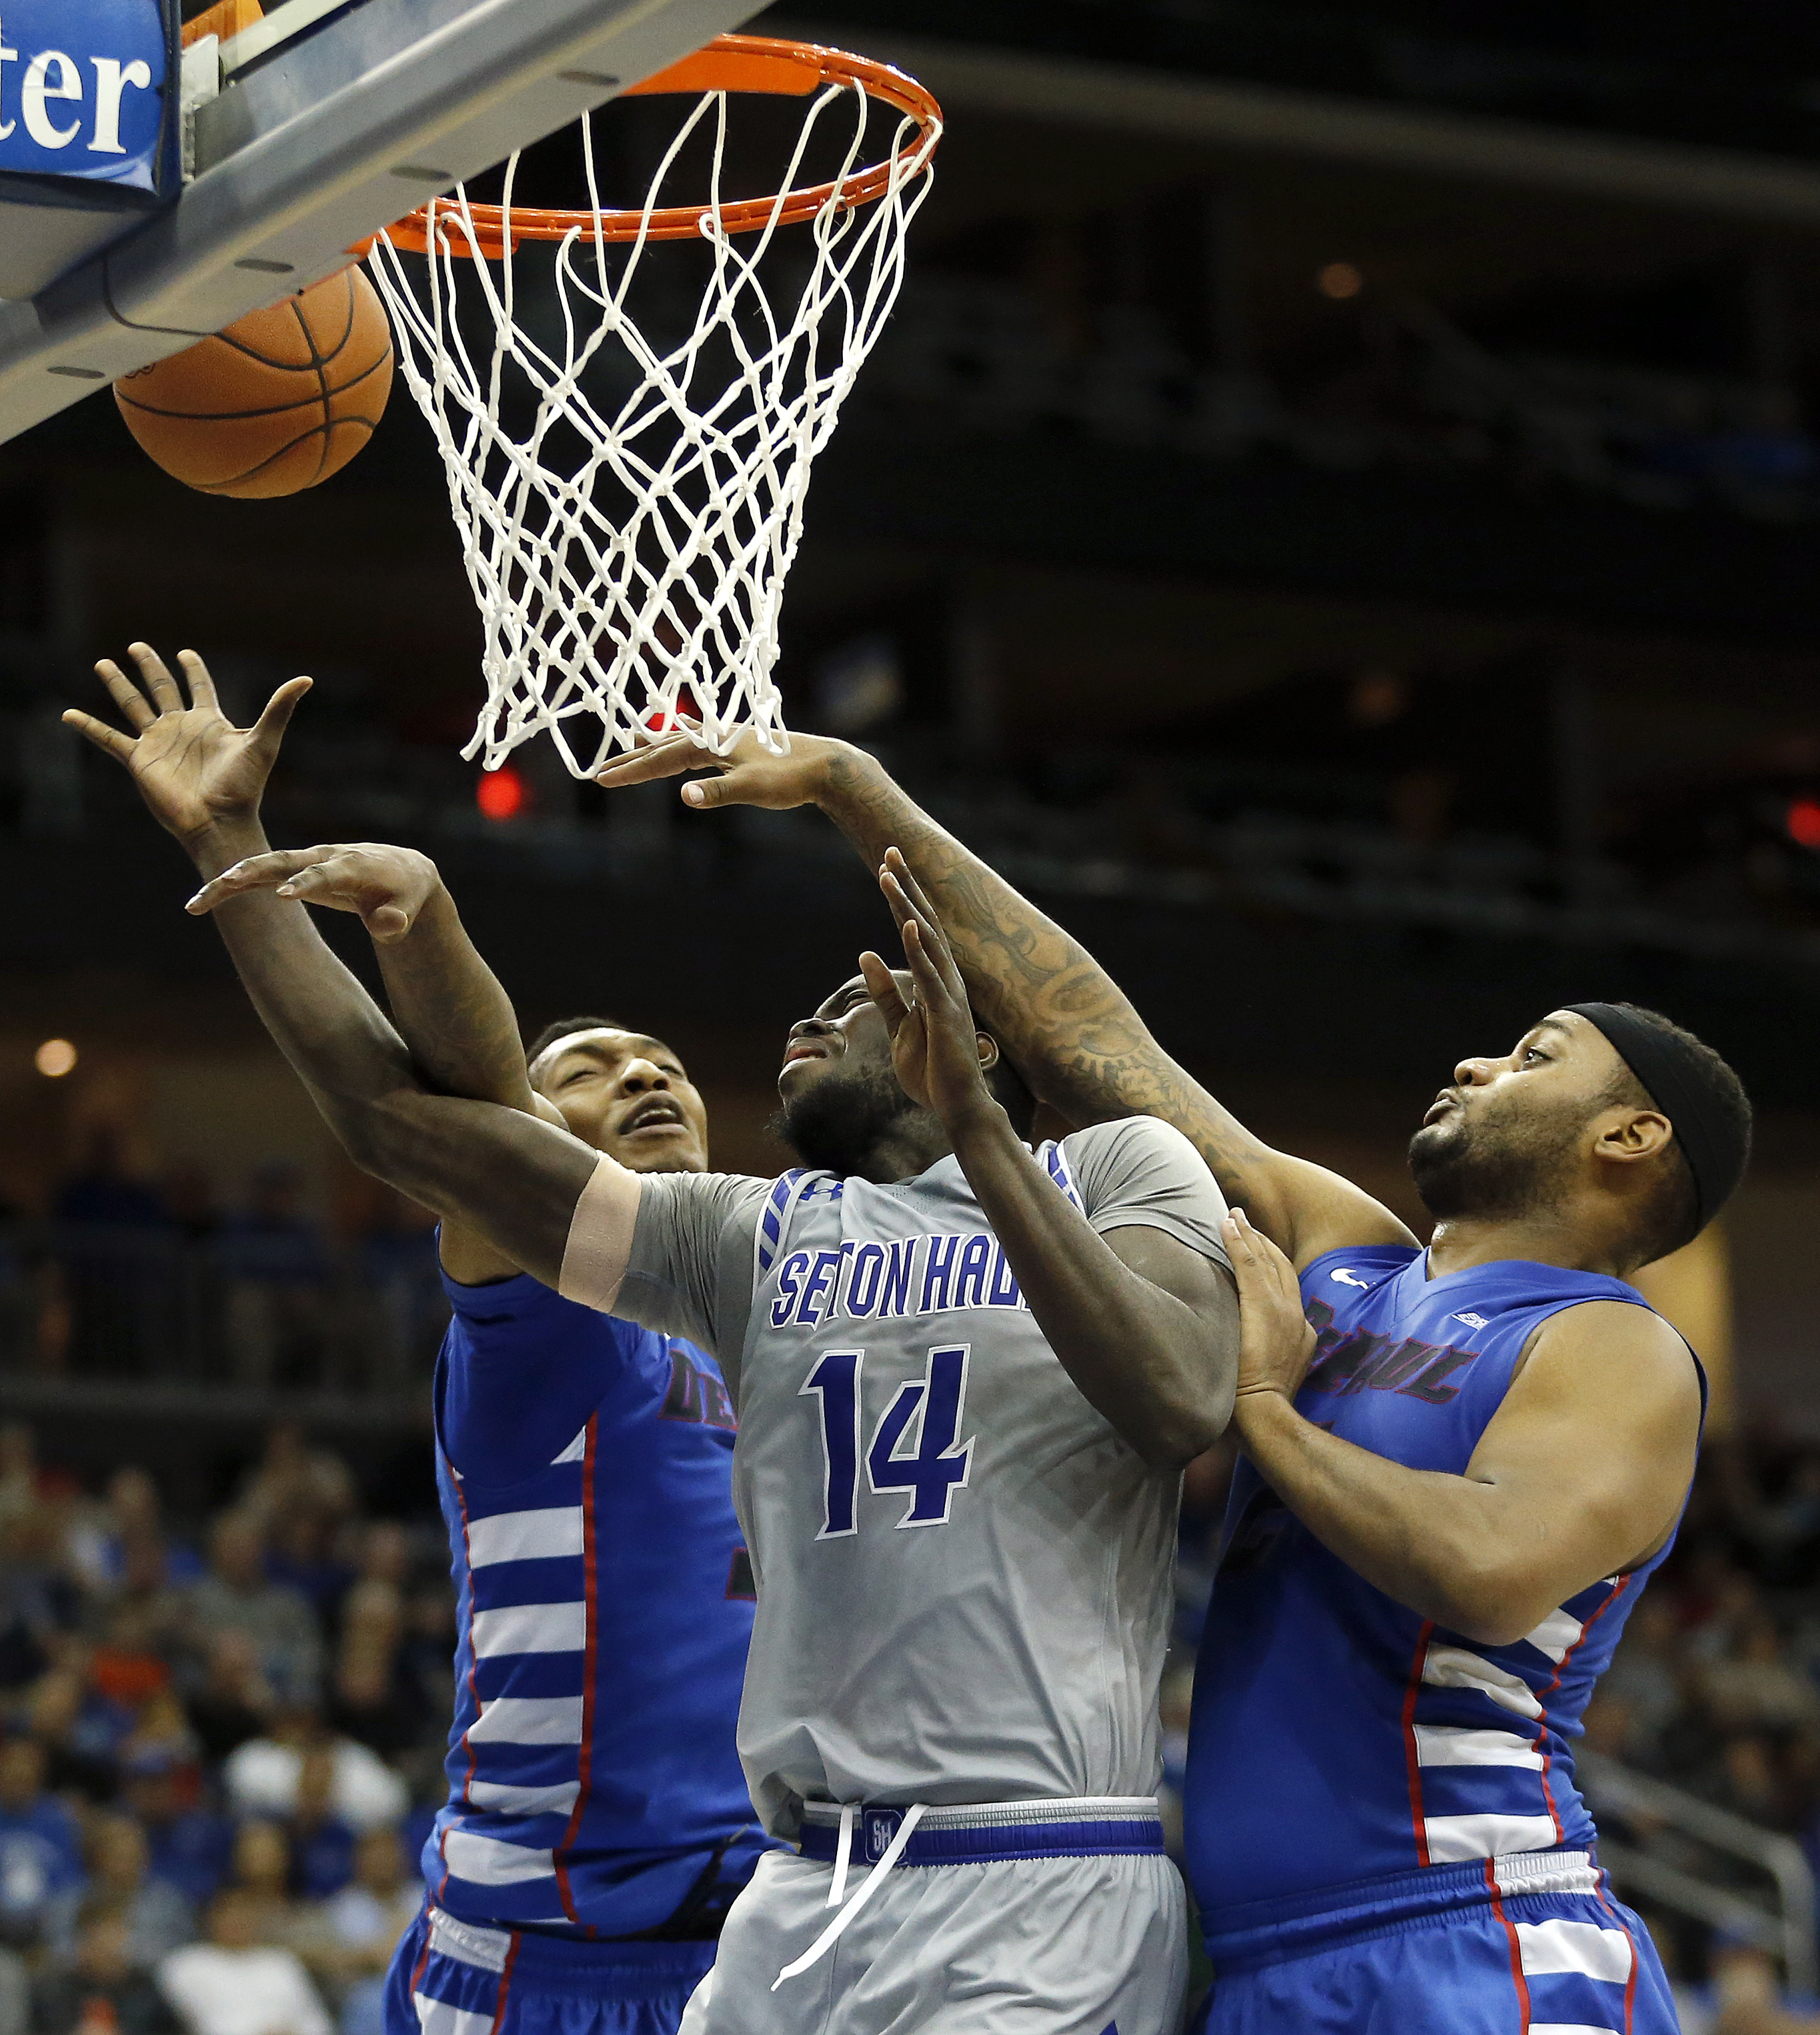 Seton Hall guard Ismael Sanogo (14) is fouled while going up for a shot against DePaul forward Rashaun Stimage, left, and center Tommy Hamilton IV during the second half of an NCAA college basketball game, Saturday, Jan. 2, 2016, in Newark, N.J. Seton Hal